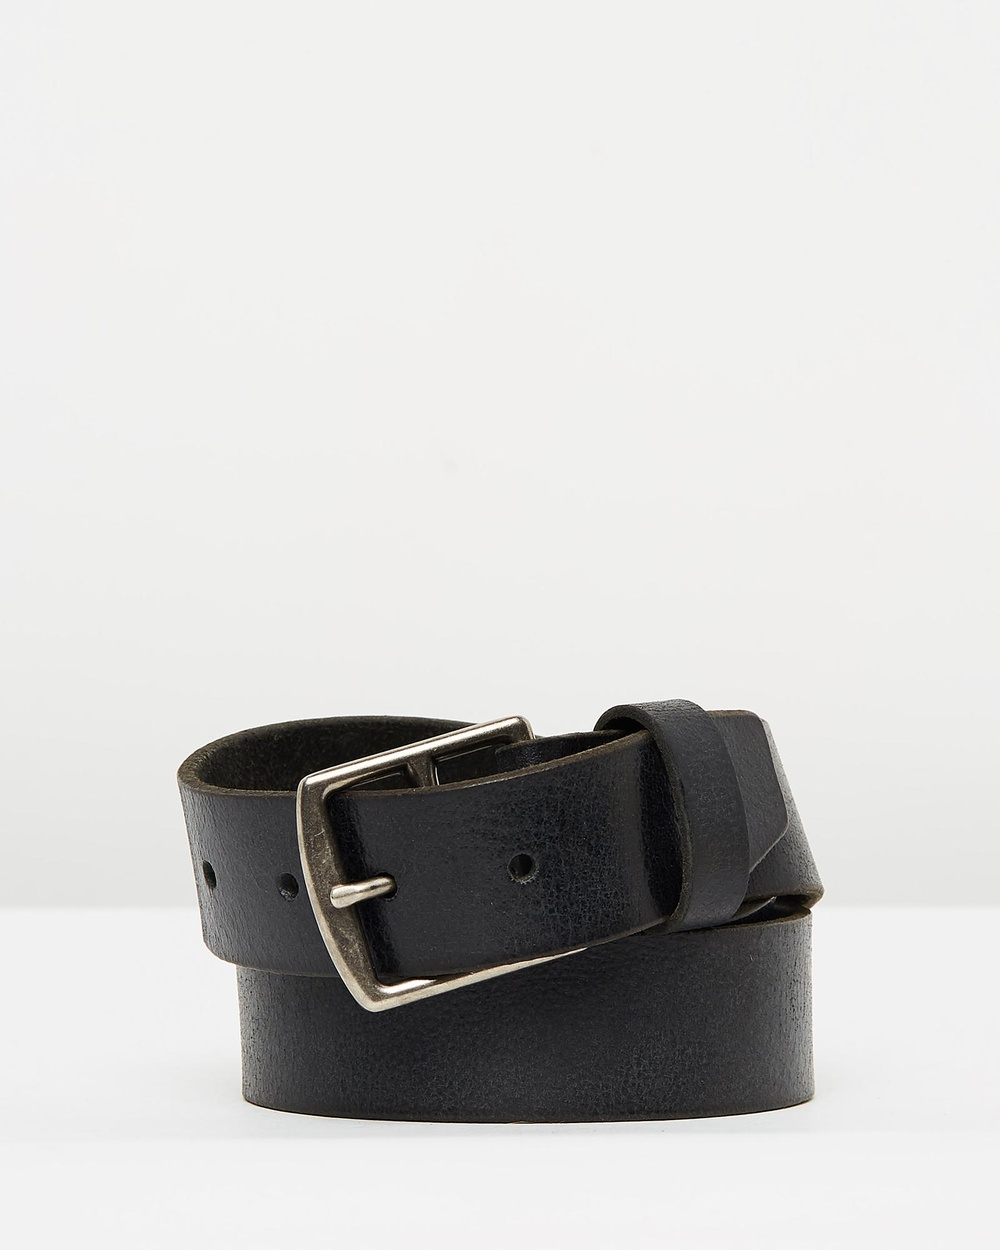 Loop Leather Co State Route Belts Black